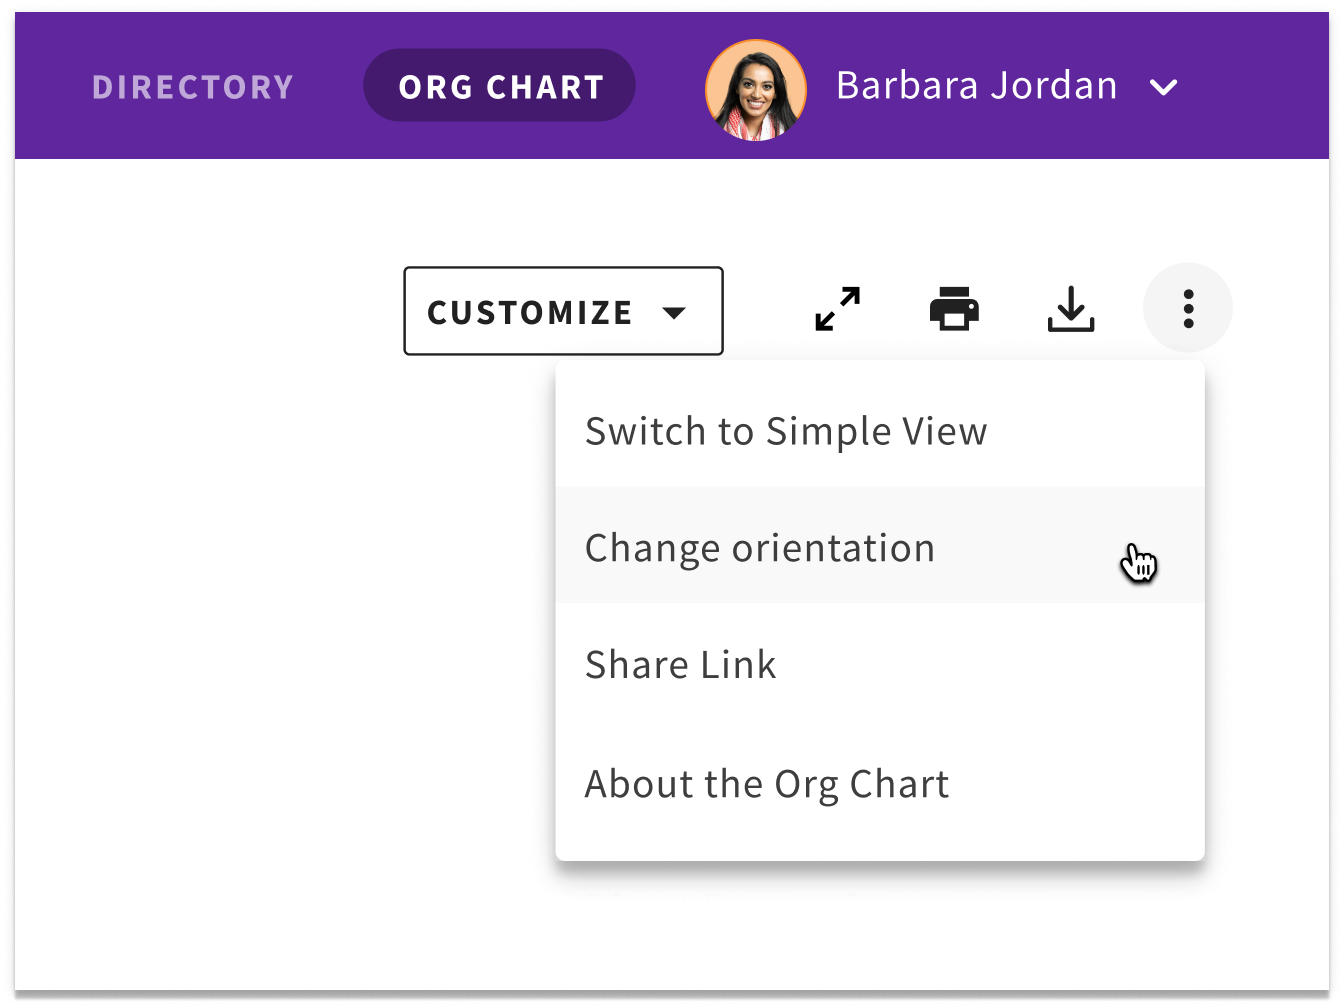 customized org chart view